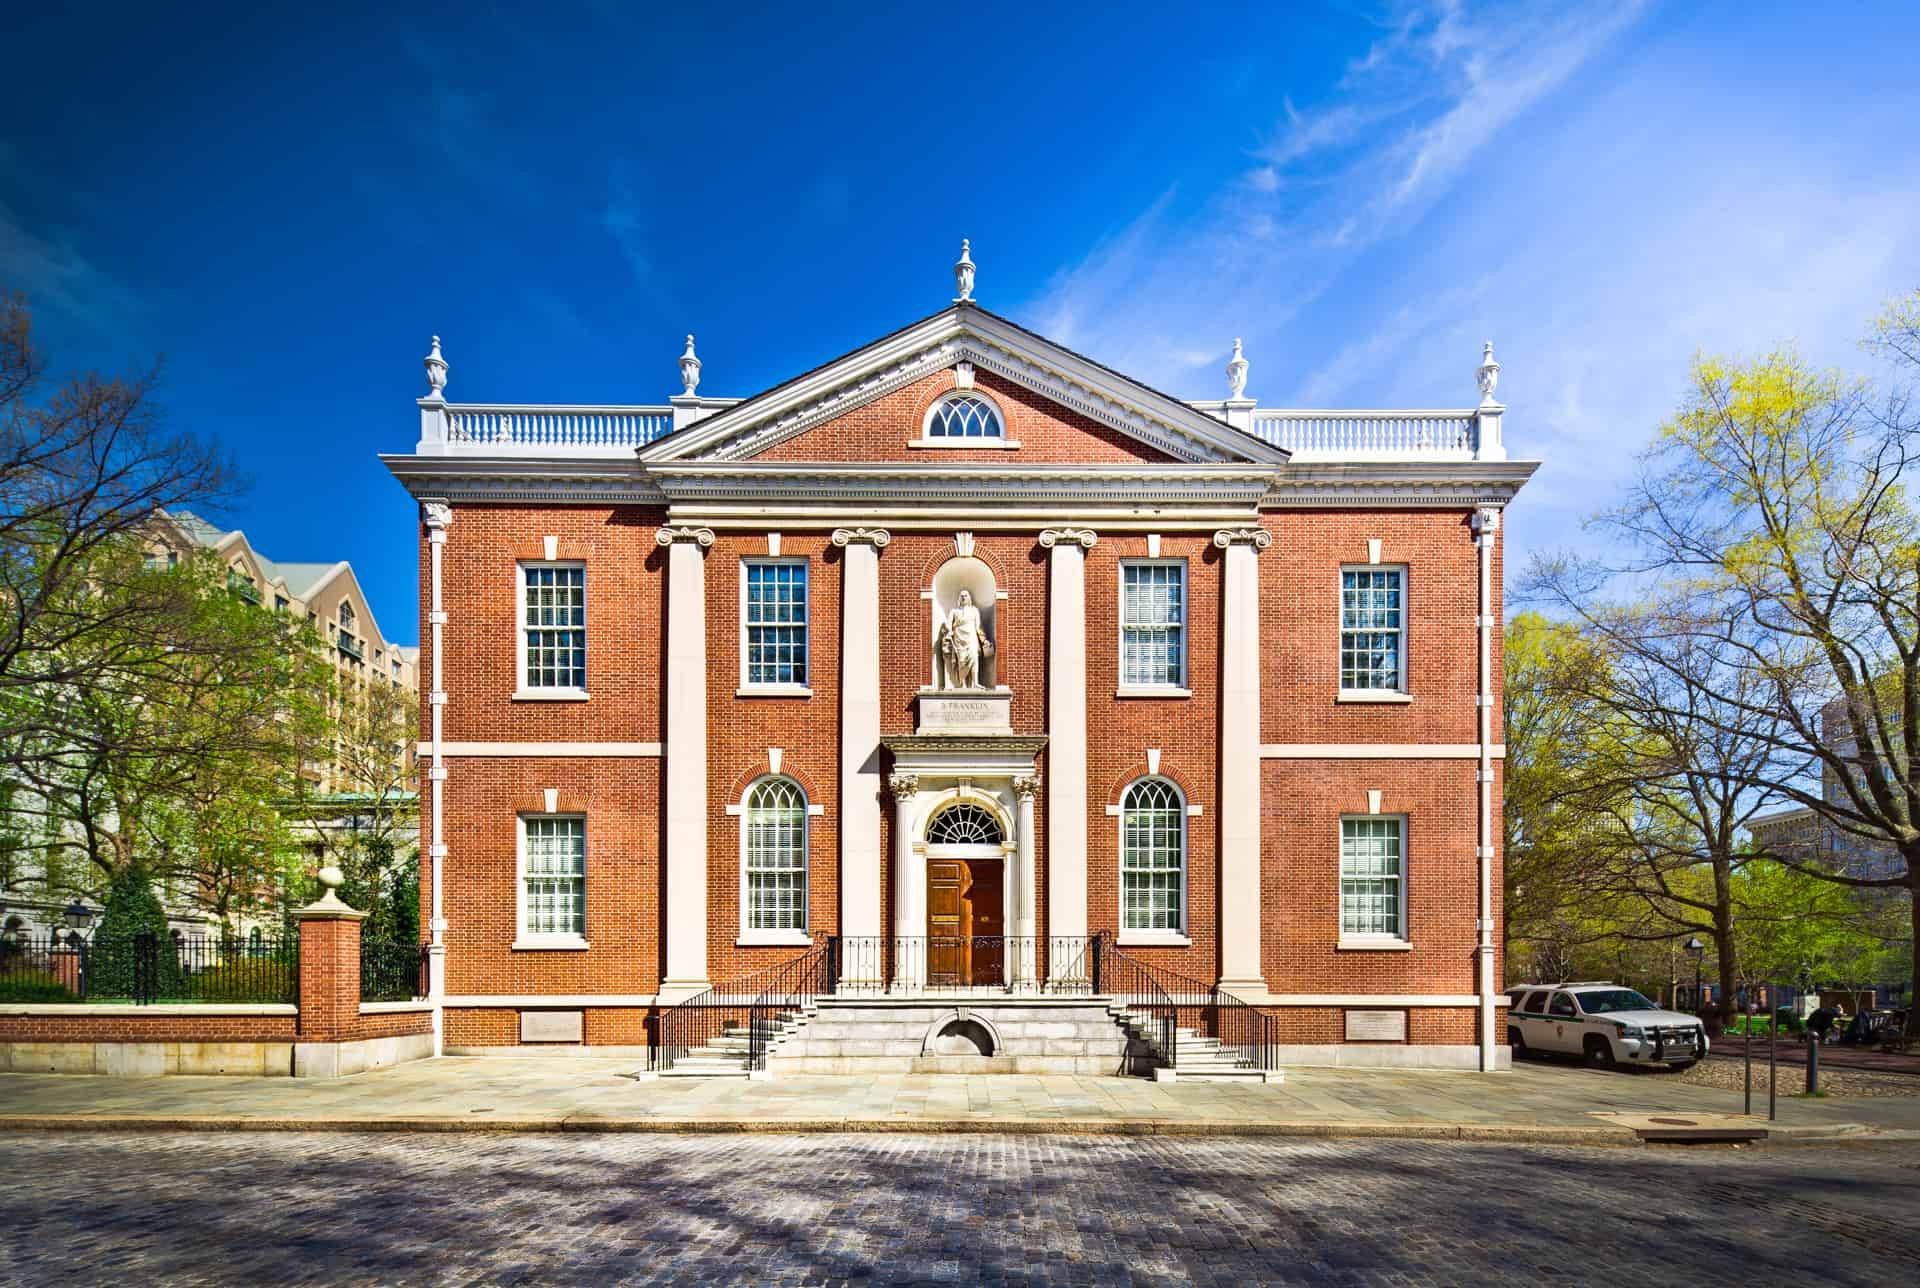 Photo of Philadelphia Landmark - The American Philosophical Society